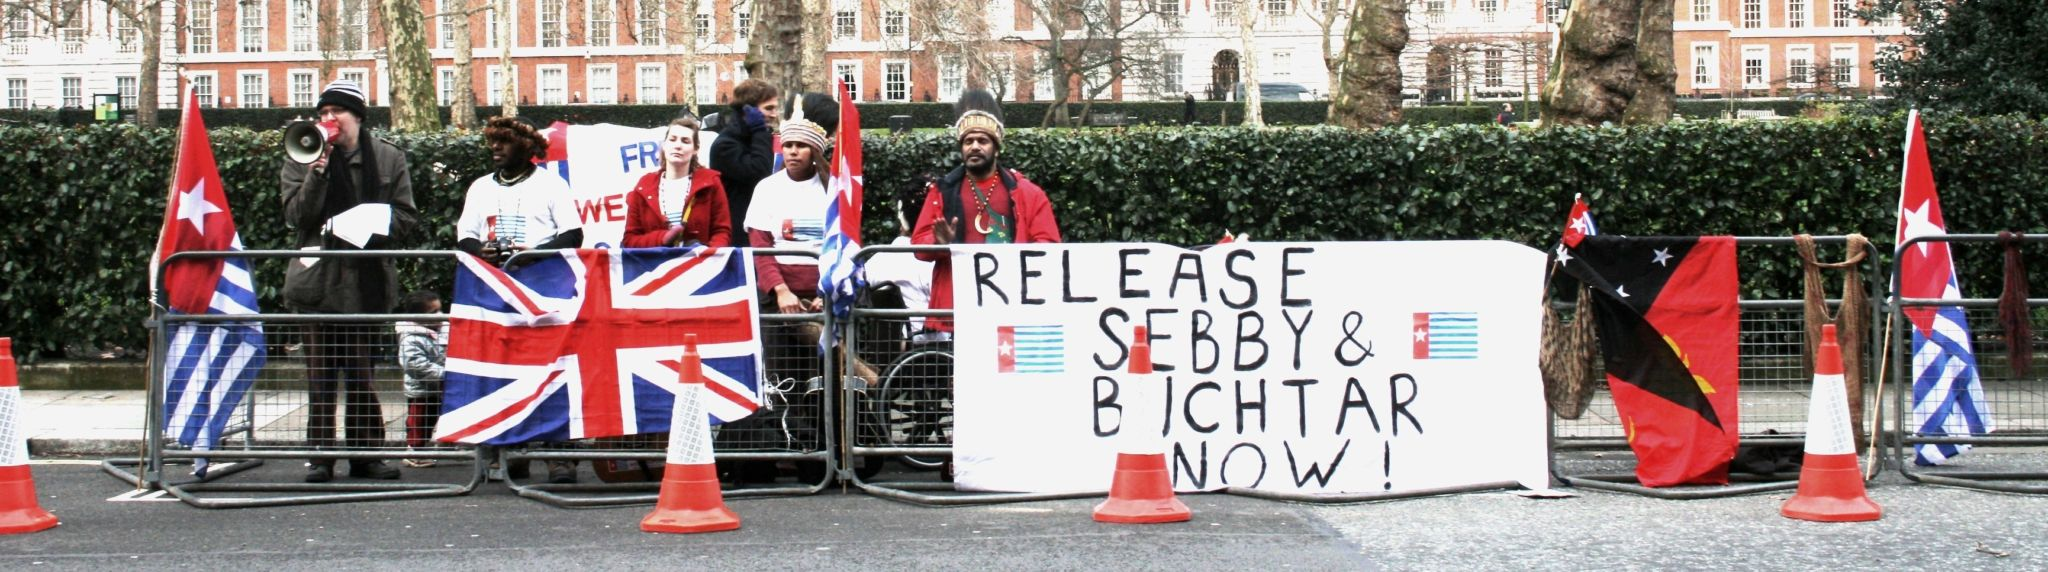 Rally for West Papua in London (Thom Chandler via Flickr)